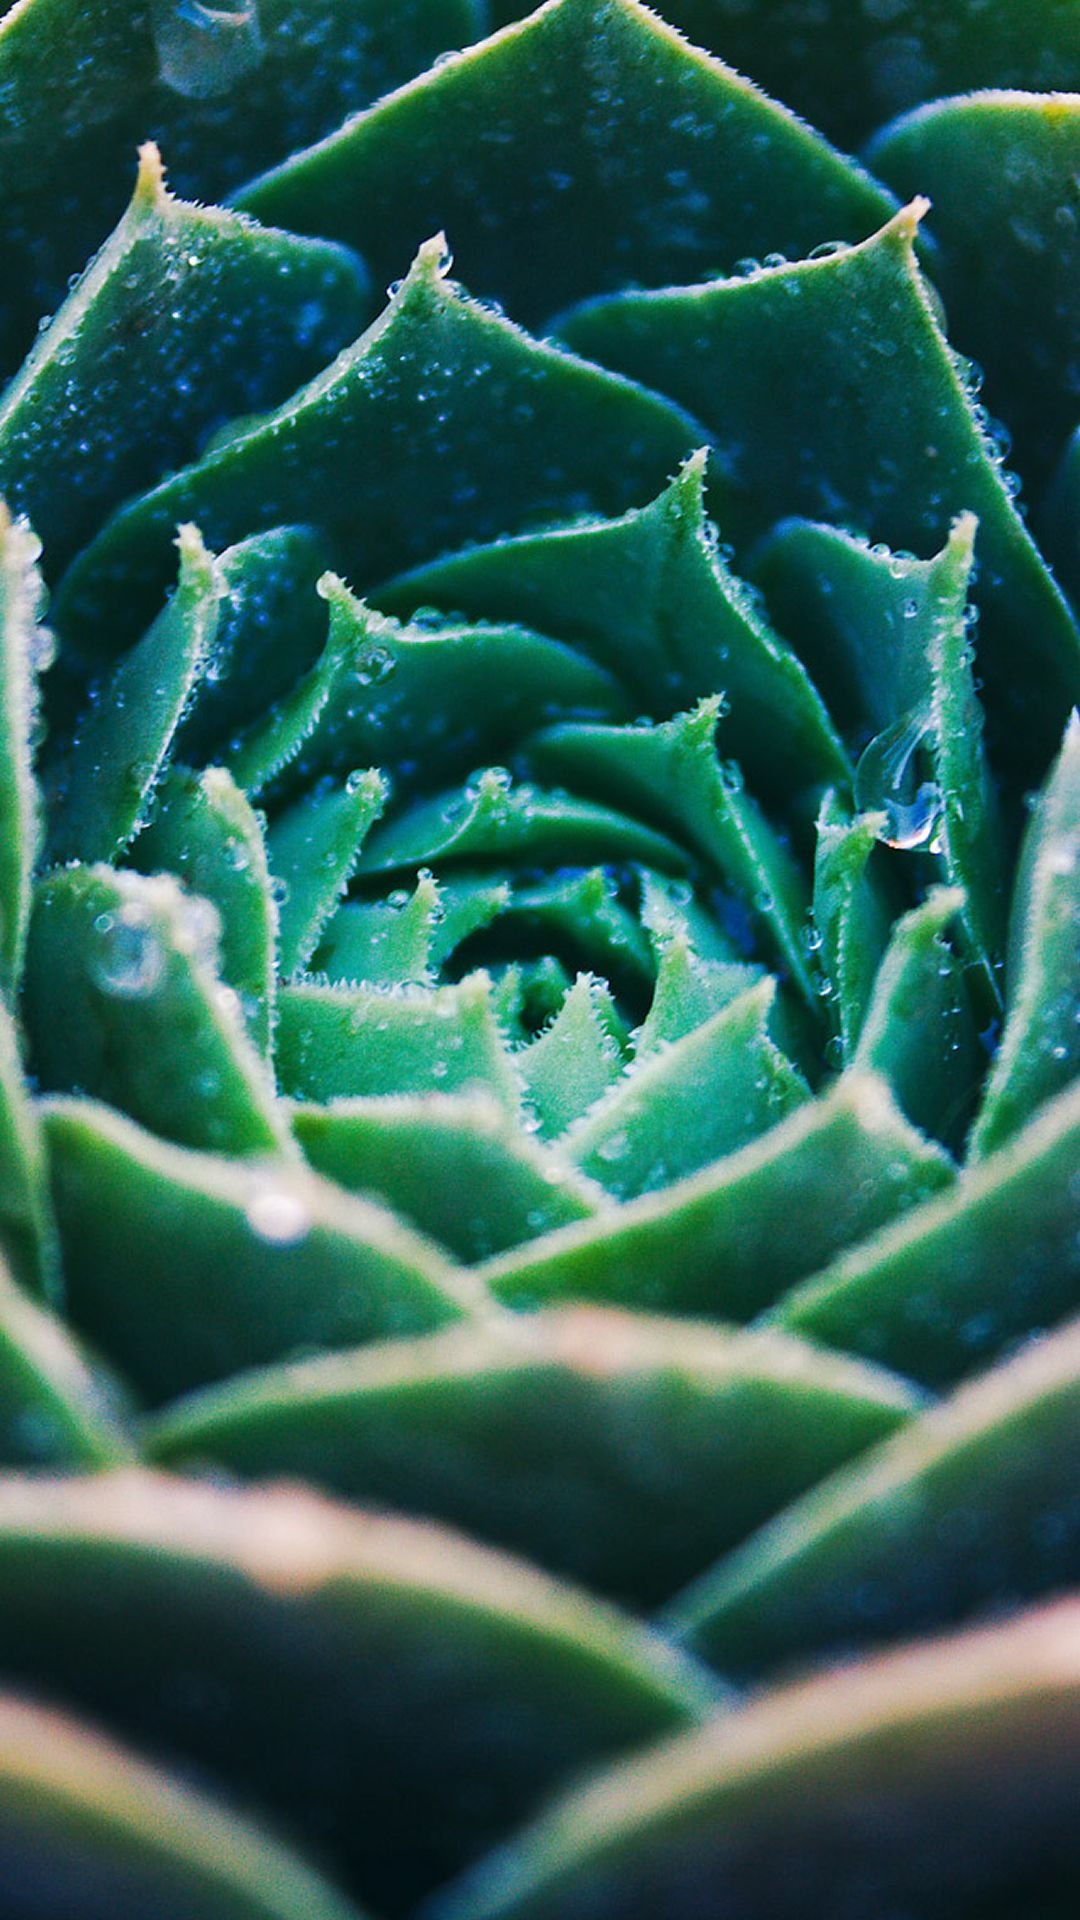 Green Echeveria Blooming Closeup iPhone 8 Wallpapers (With